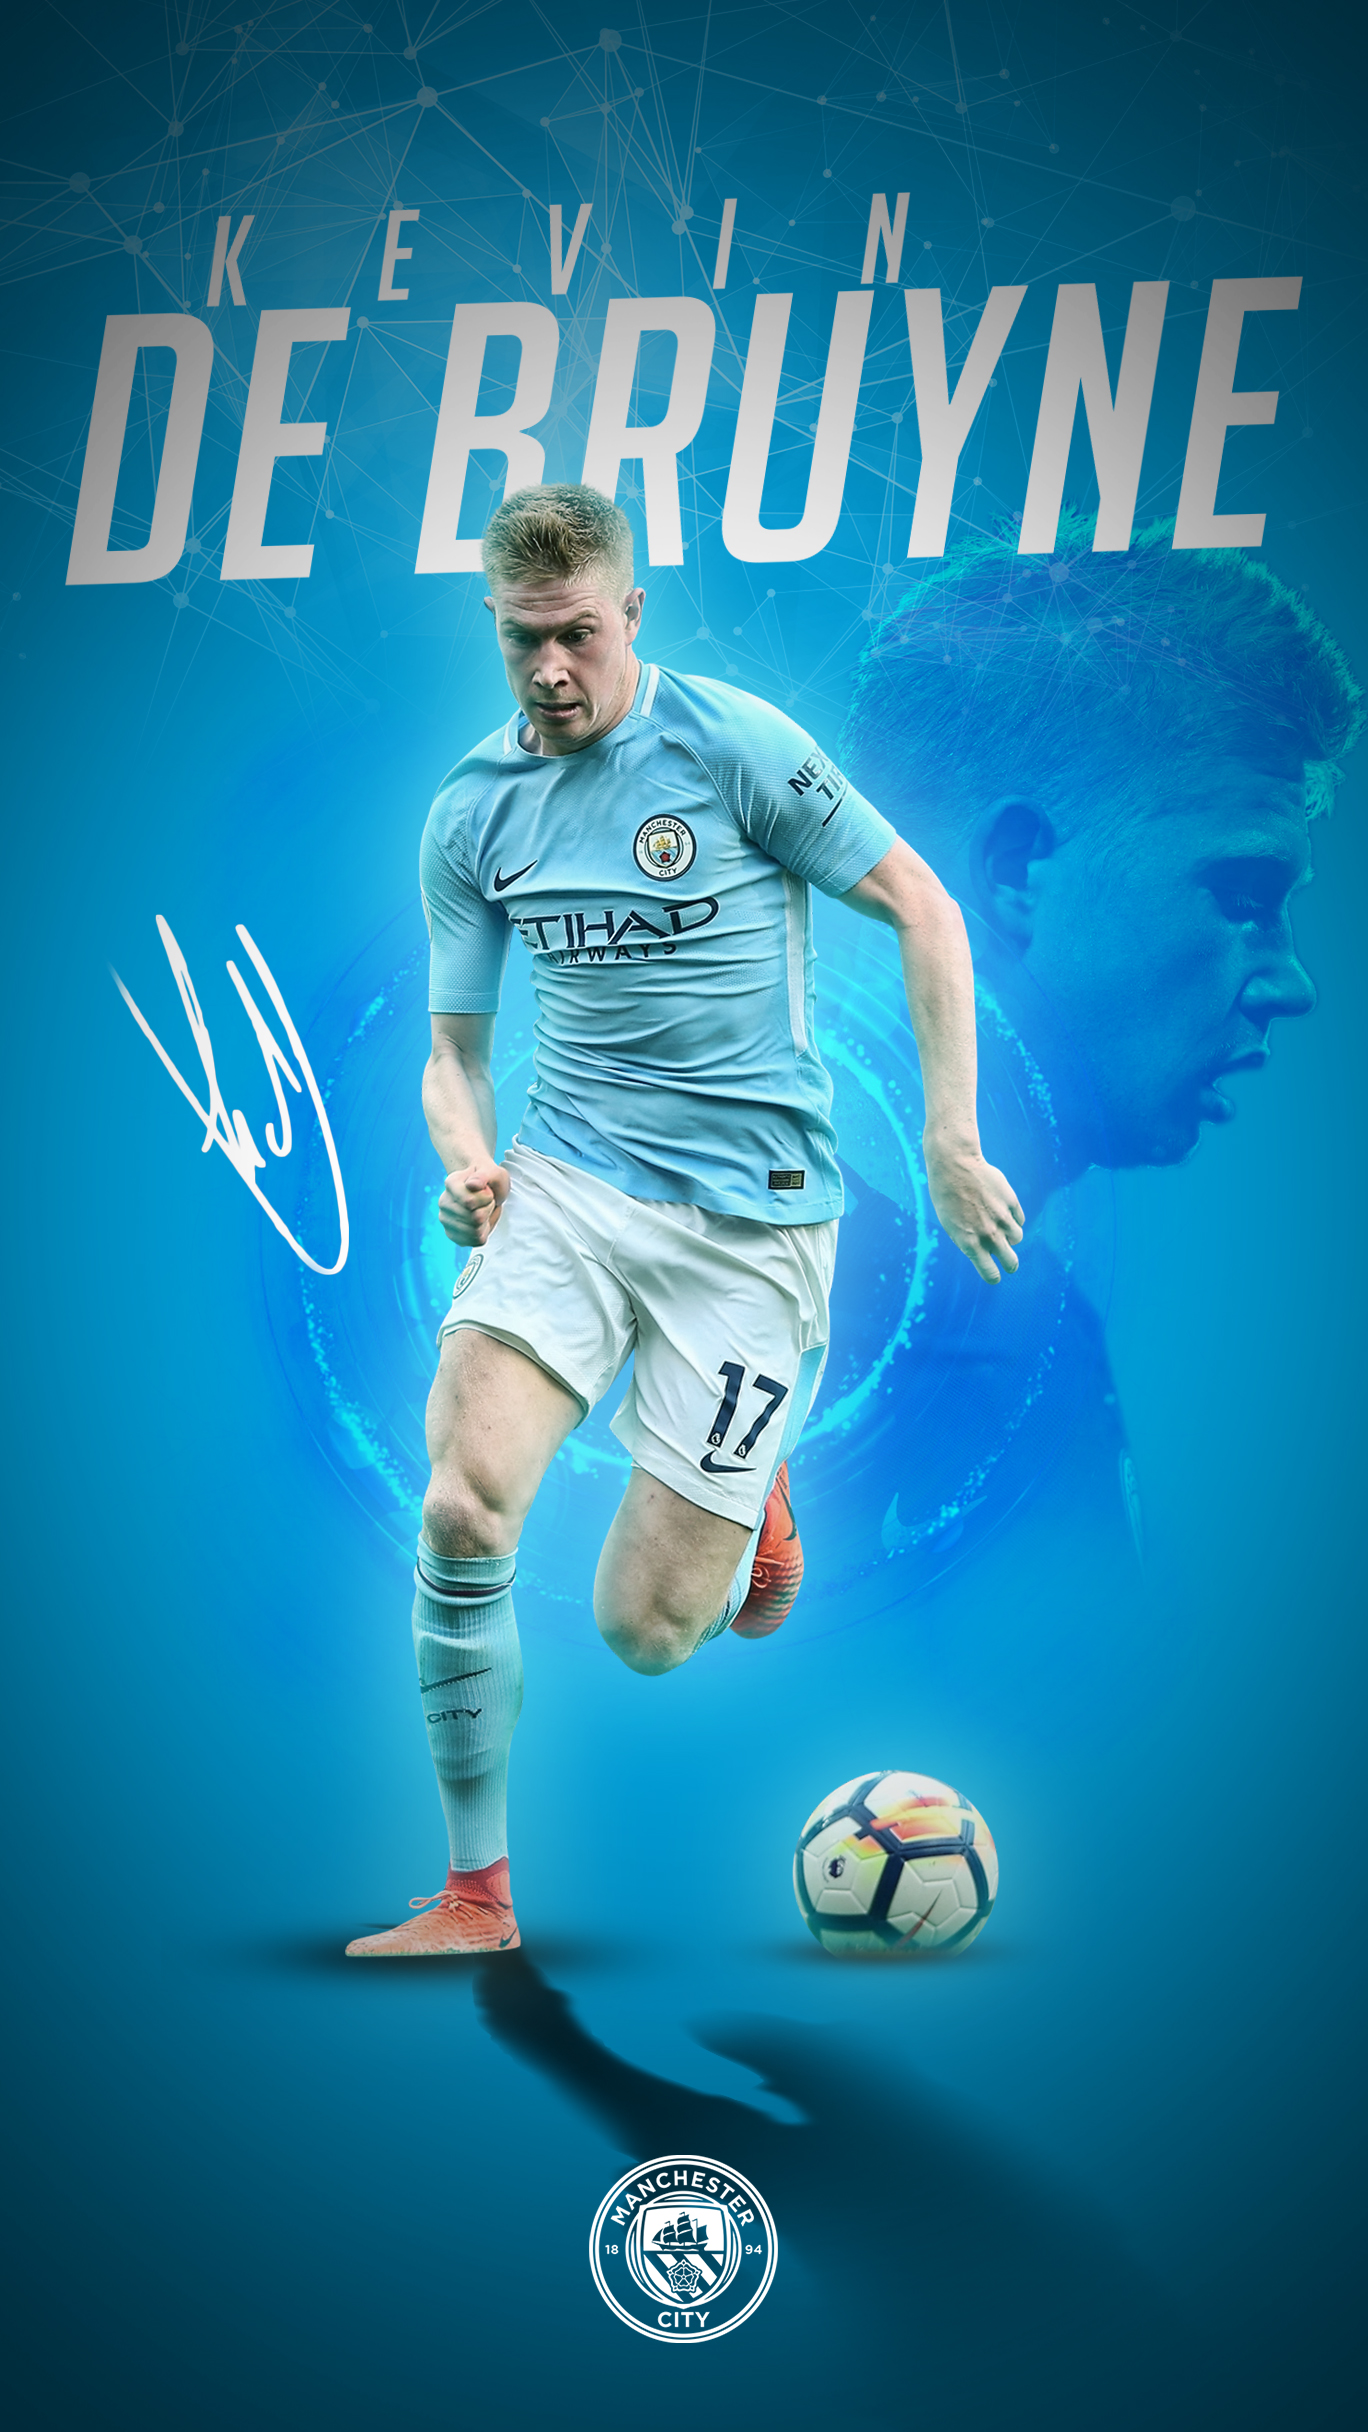 Kevin De Bruyne Phone Wallpaper 20172018 By Graphicsamhd On